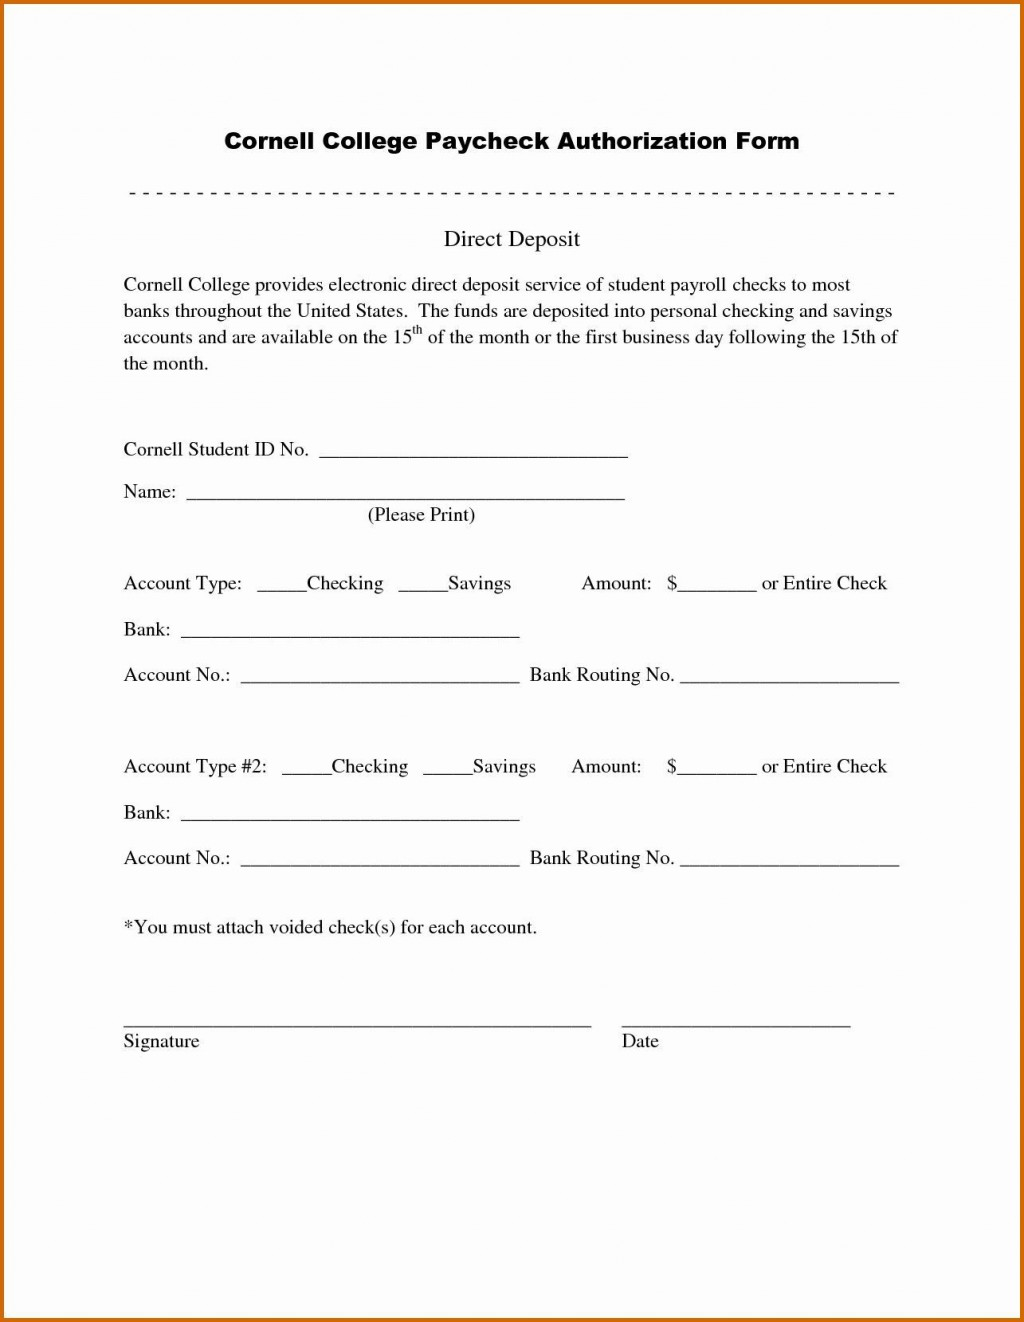 007 Wonderful Direct Deposit Agreement Authorization Form Template High Resolution Large